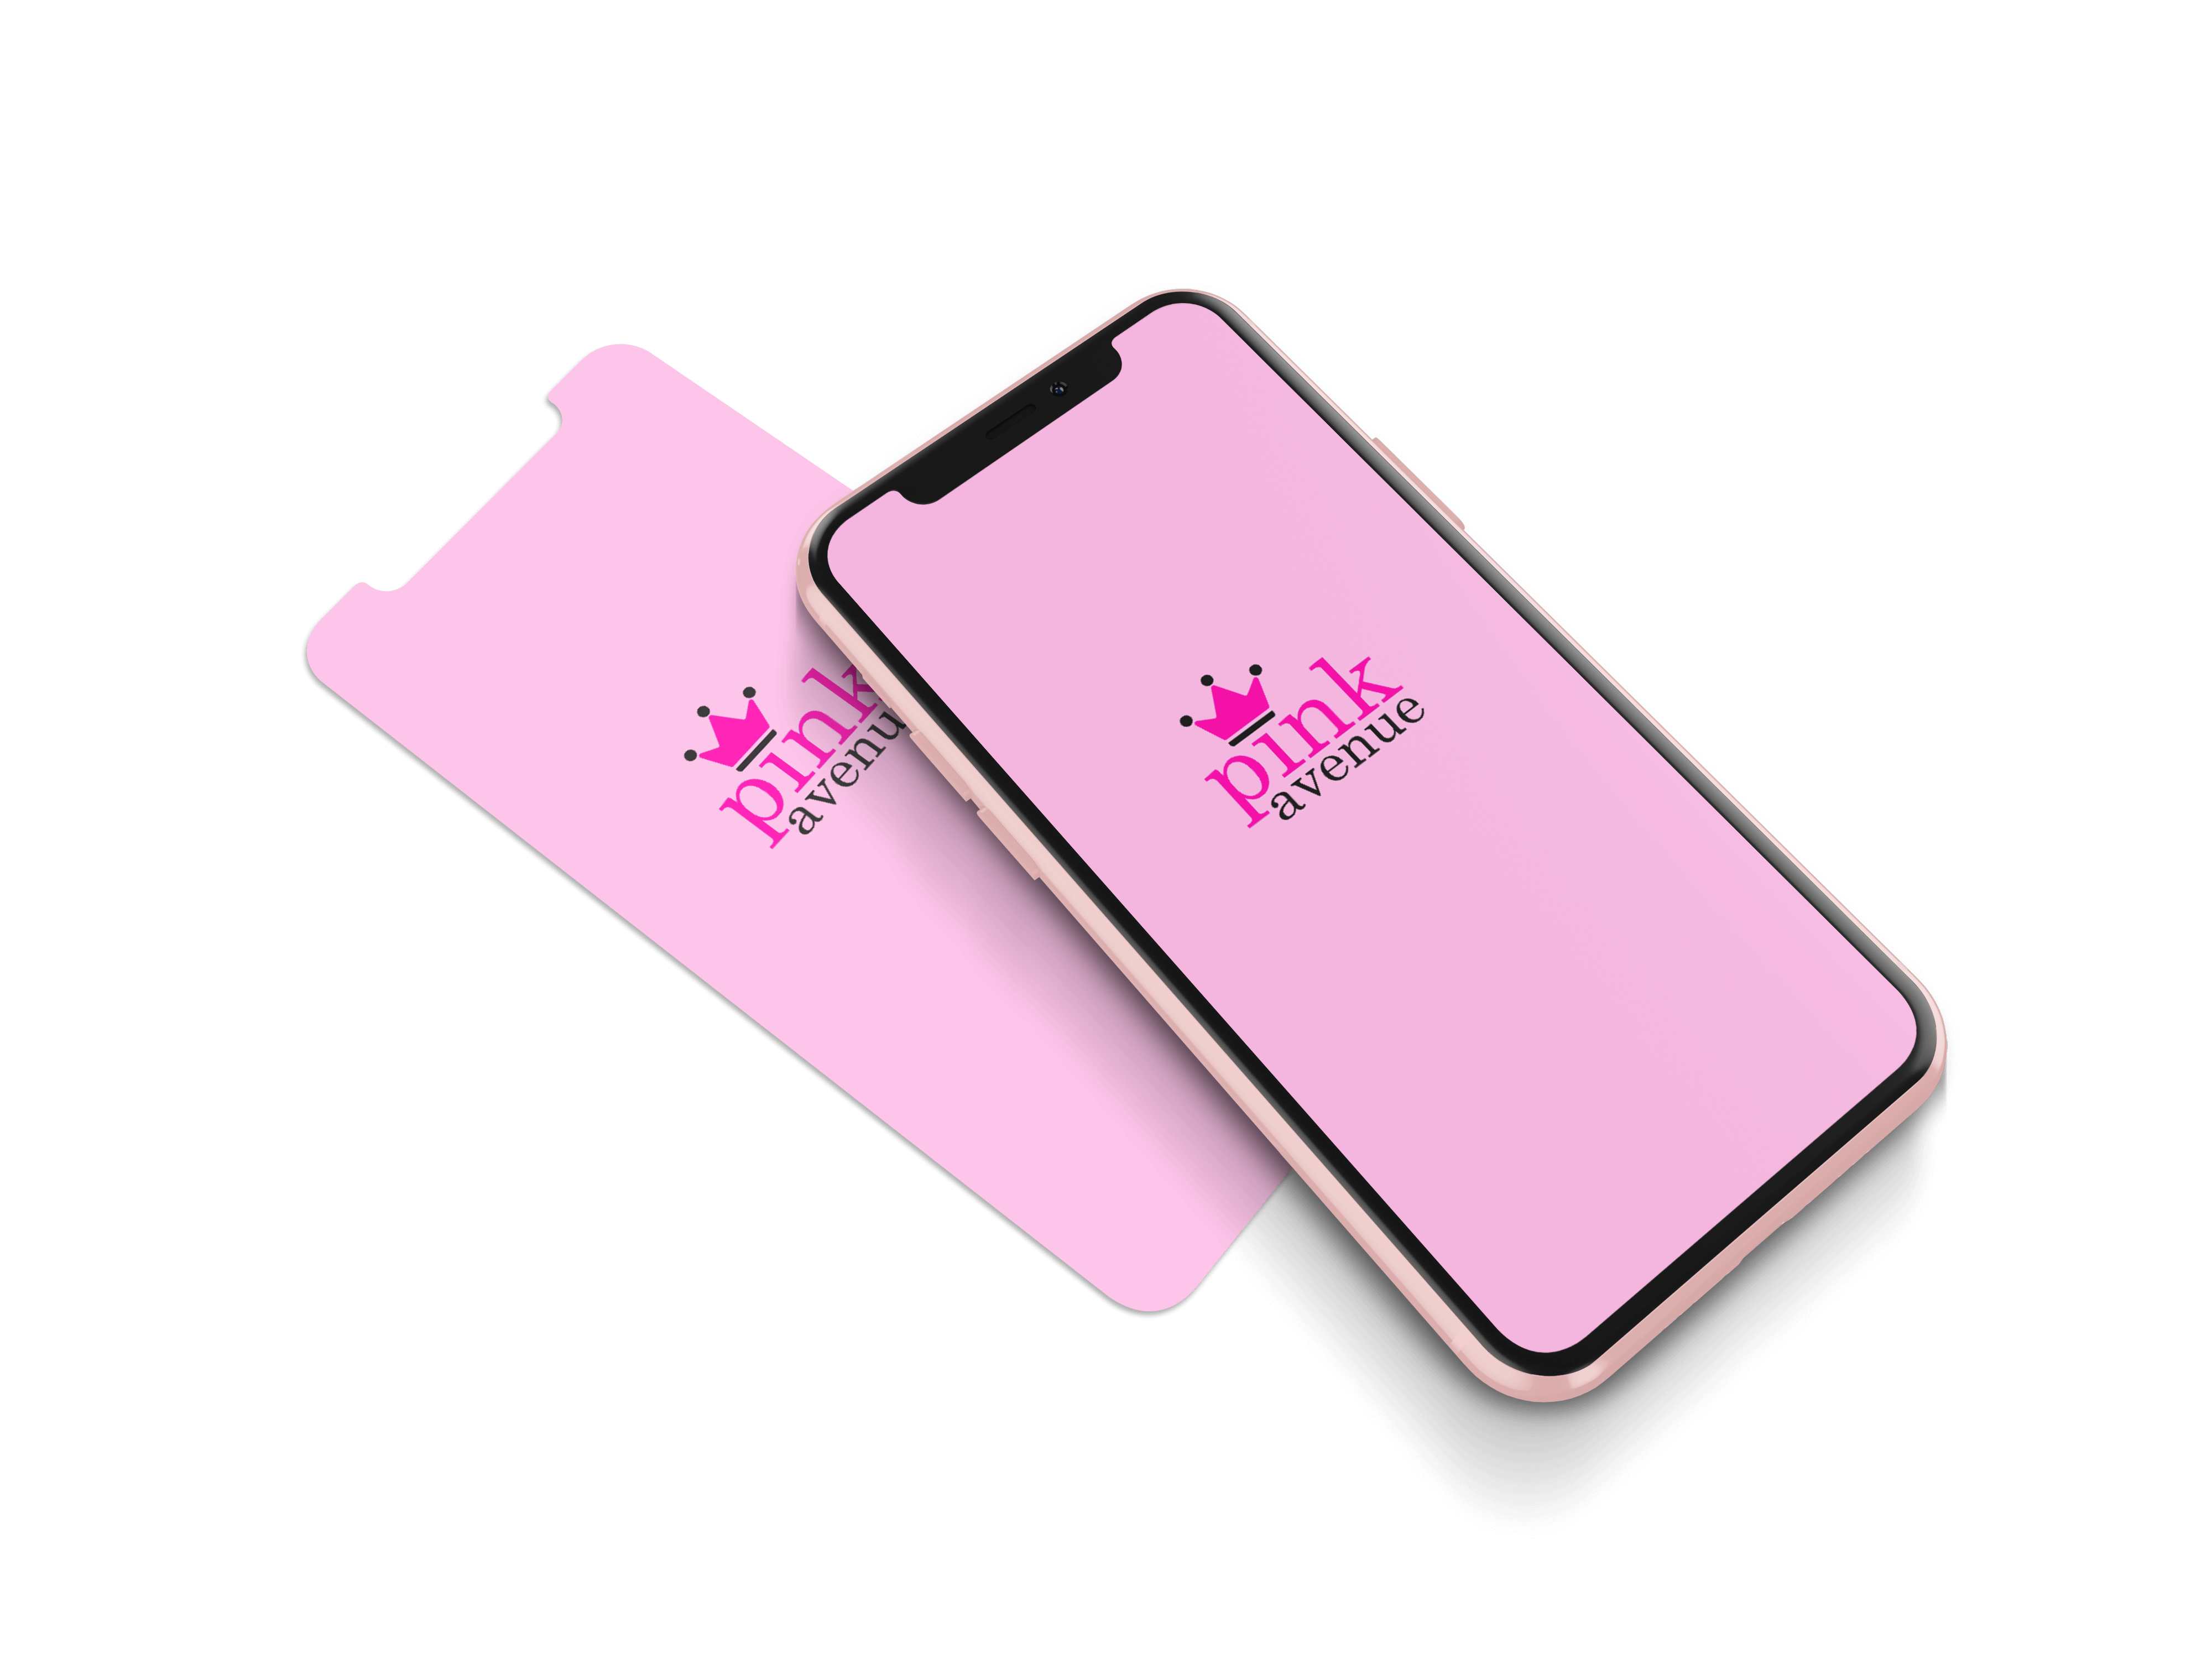 The main image of Pink Avenue Beauty's custom app on a phone